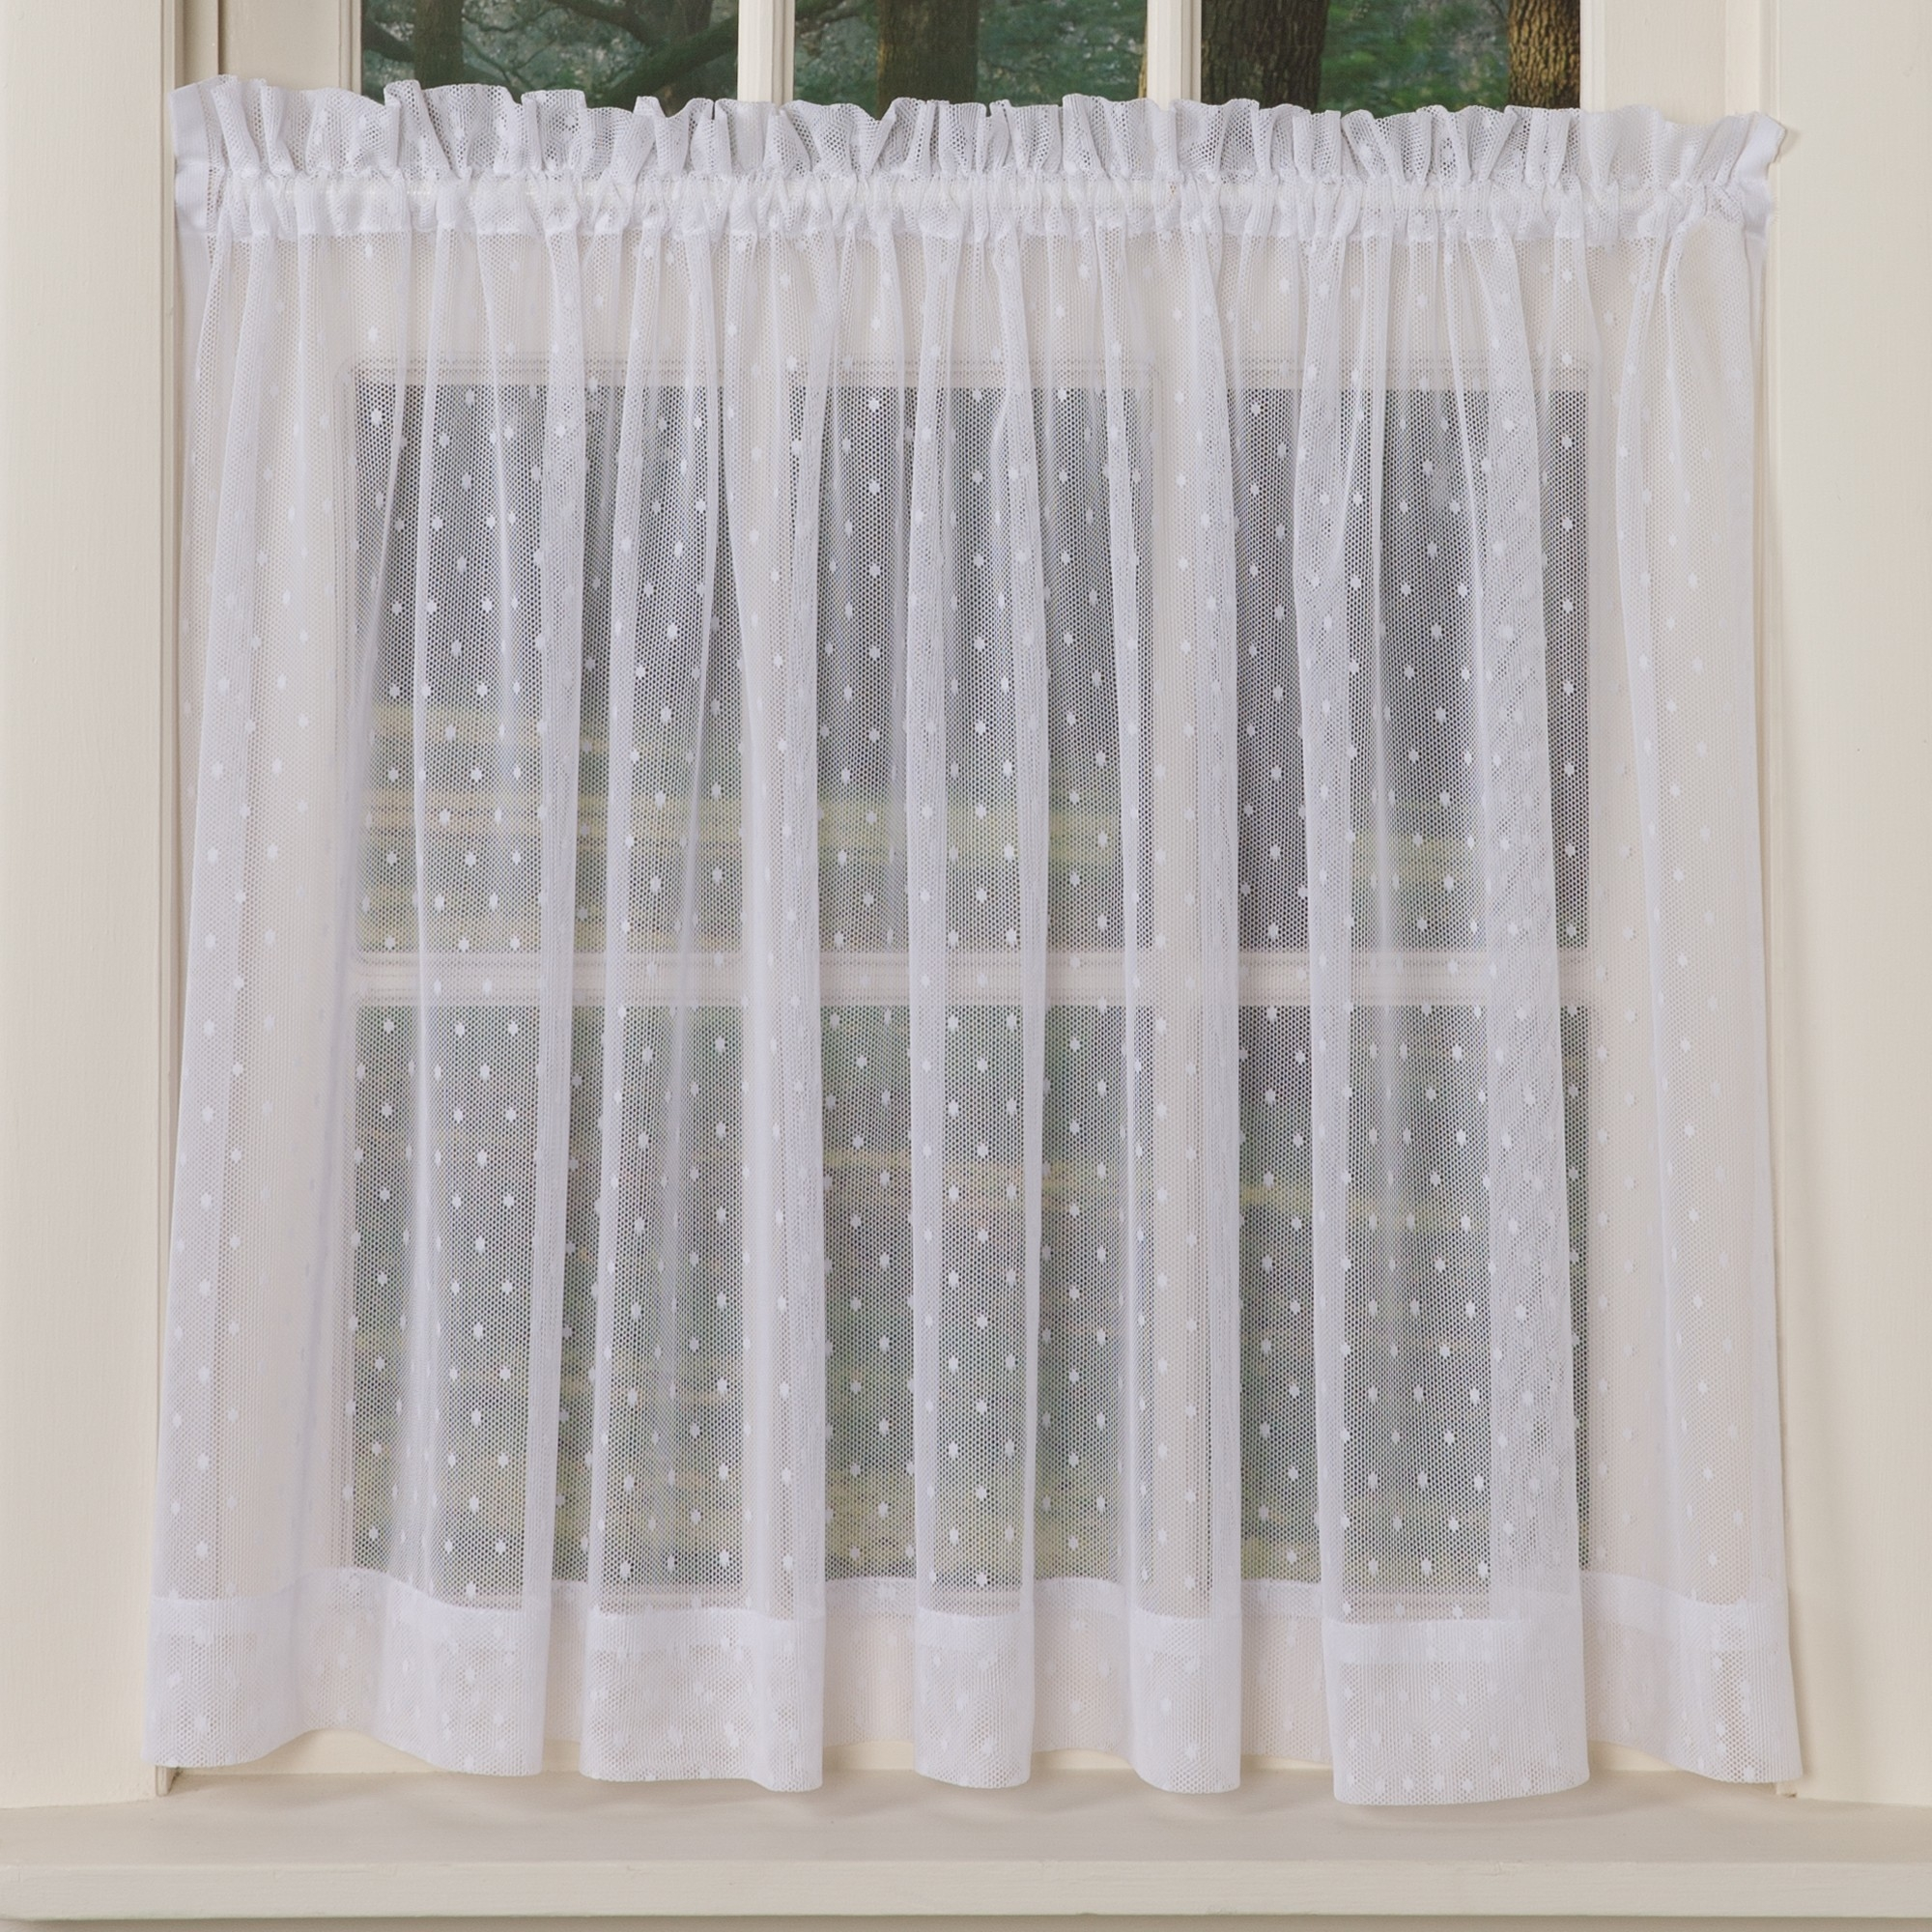 Dotted Sheer Curtains Sturbridge Yankee Workshop For Sheer White Curtain Panels (Image 10 of 25)